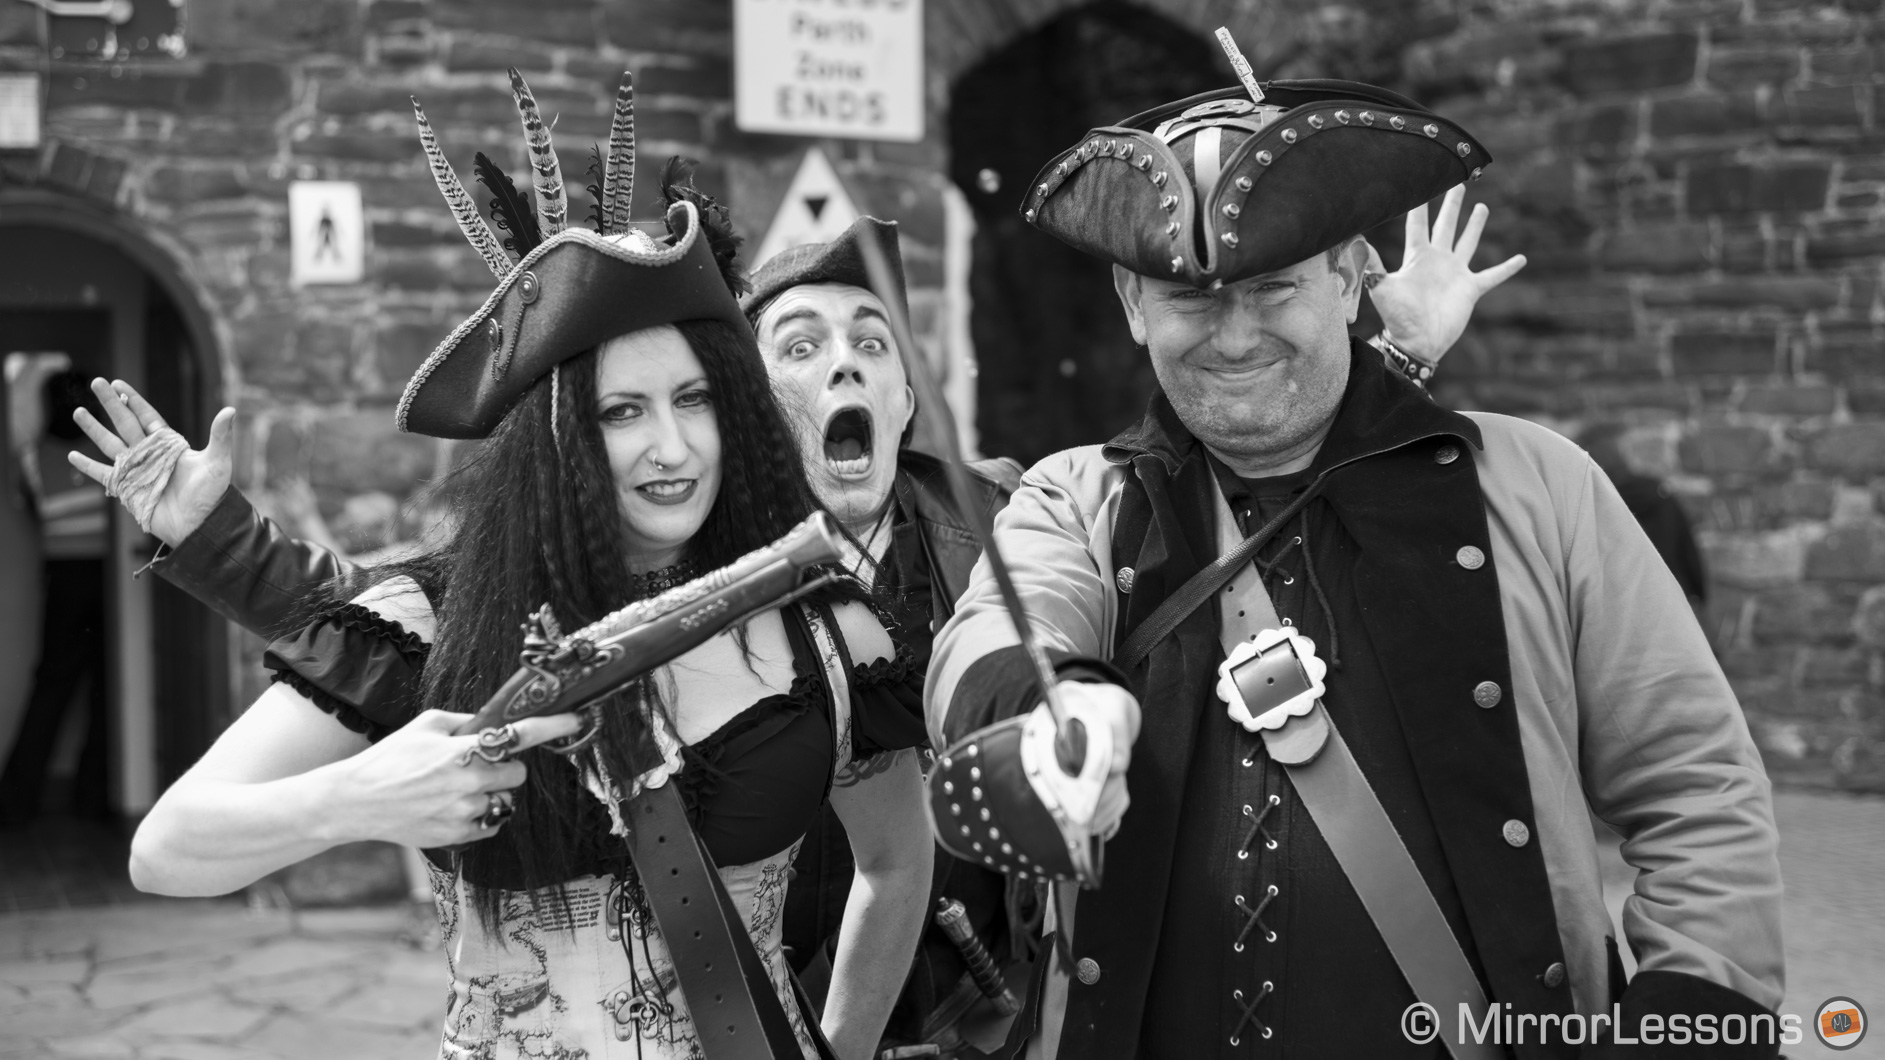 The Pirate Weekend in Conwy – A Leica M Monochrom (Typ 246